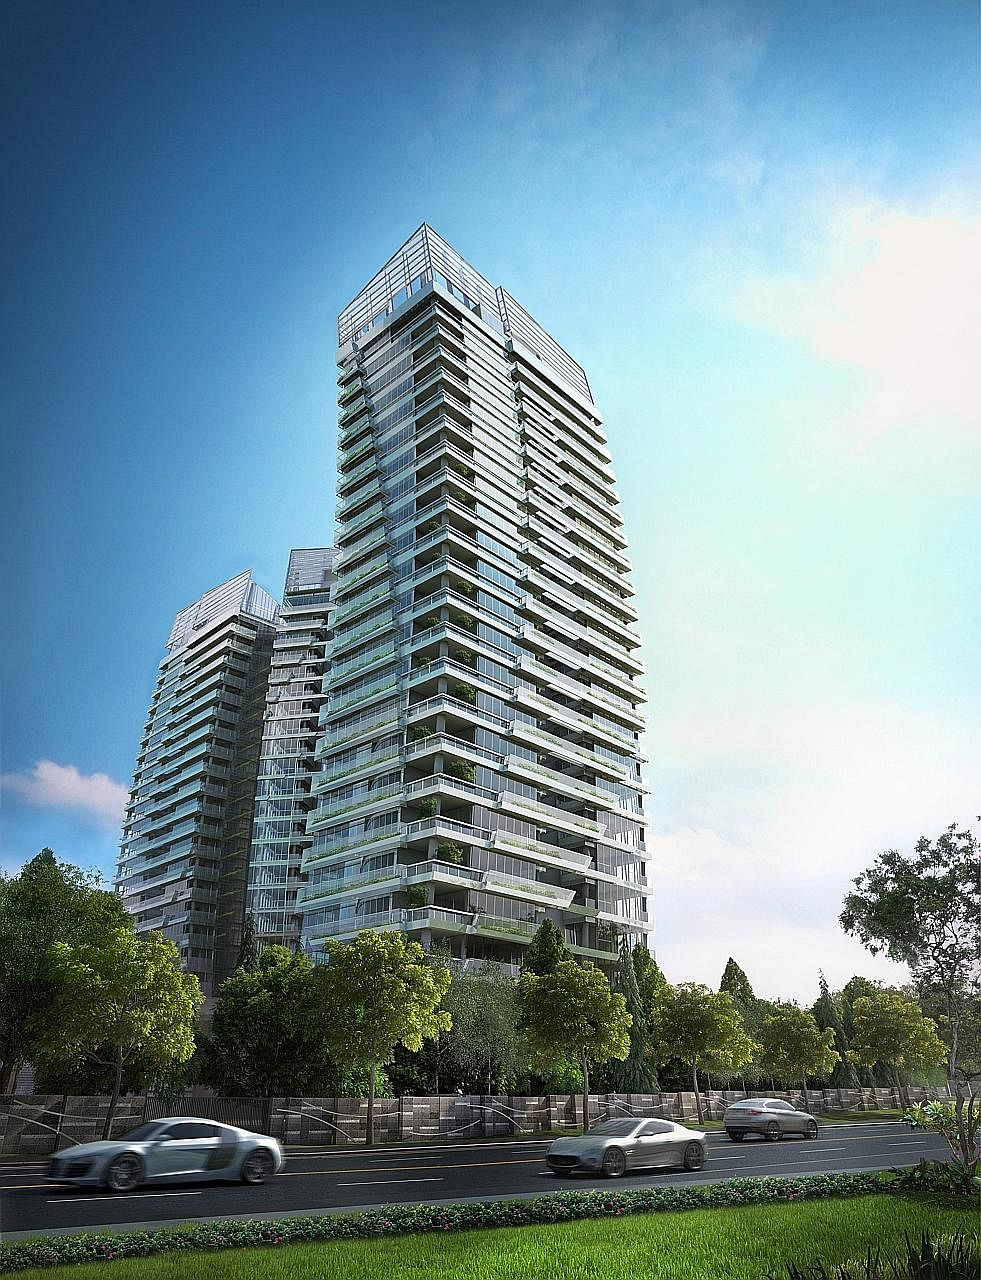 An artist's impression of Gramercy Park, a CDL freehold project in Grange Road. Even though it has not been officially launched, it has already sold 30 units at an average of about $2,600 psf.